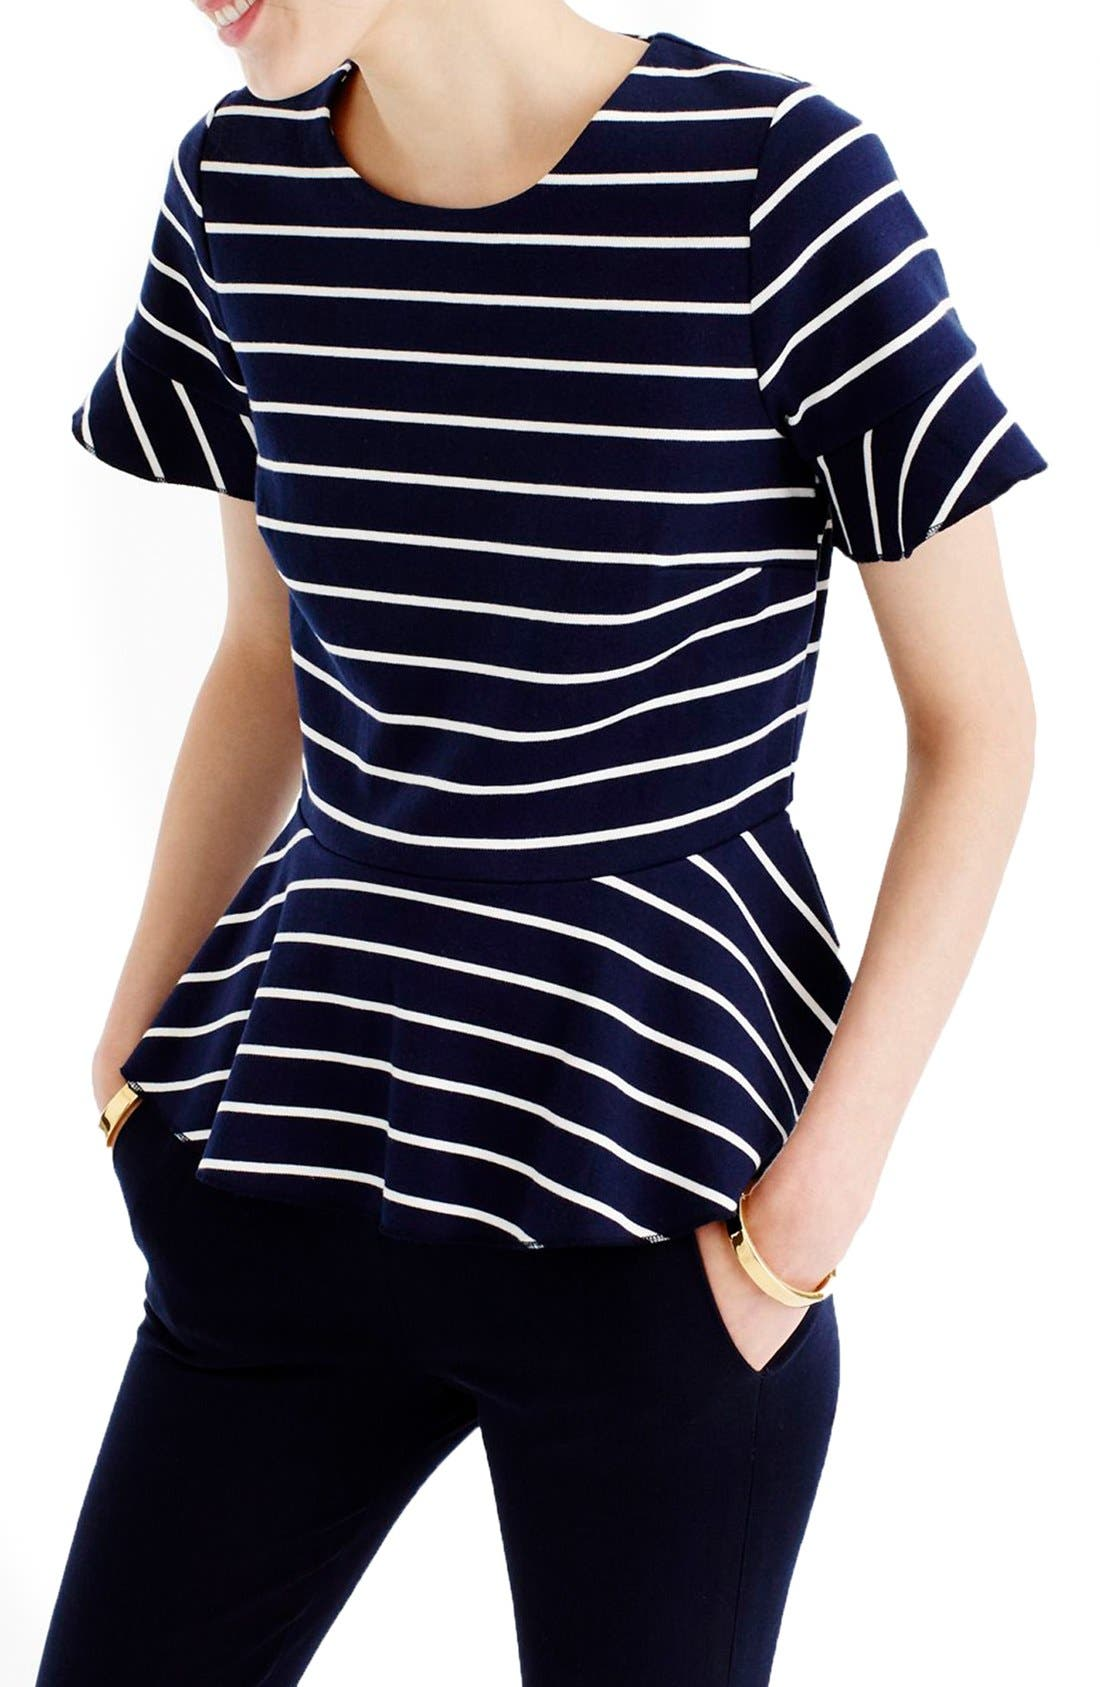 Alternate Image 1 Selected - J.Crew Stripe Structured Flounce Top